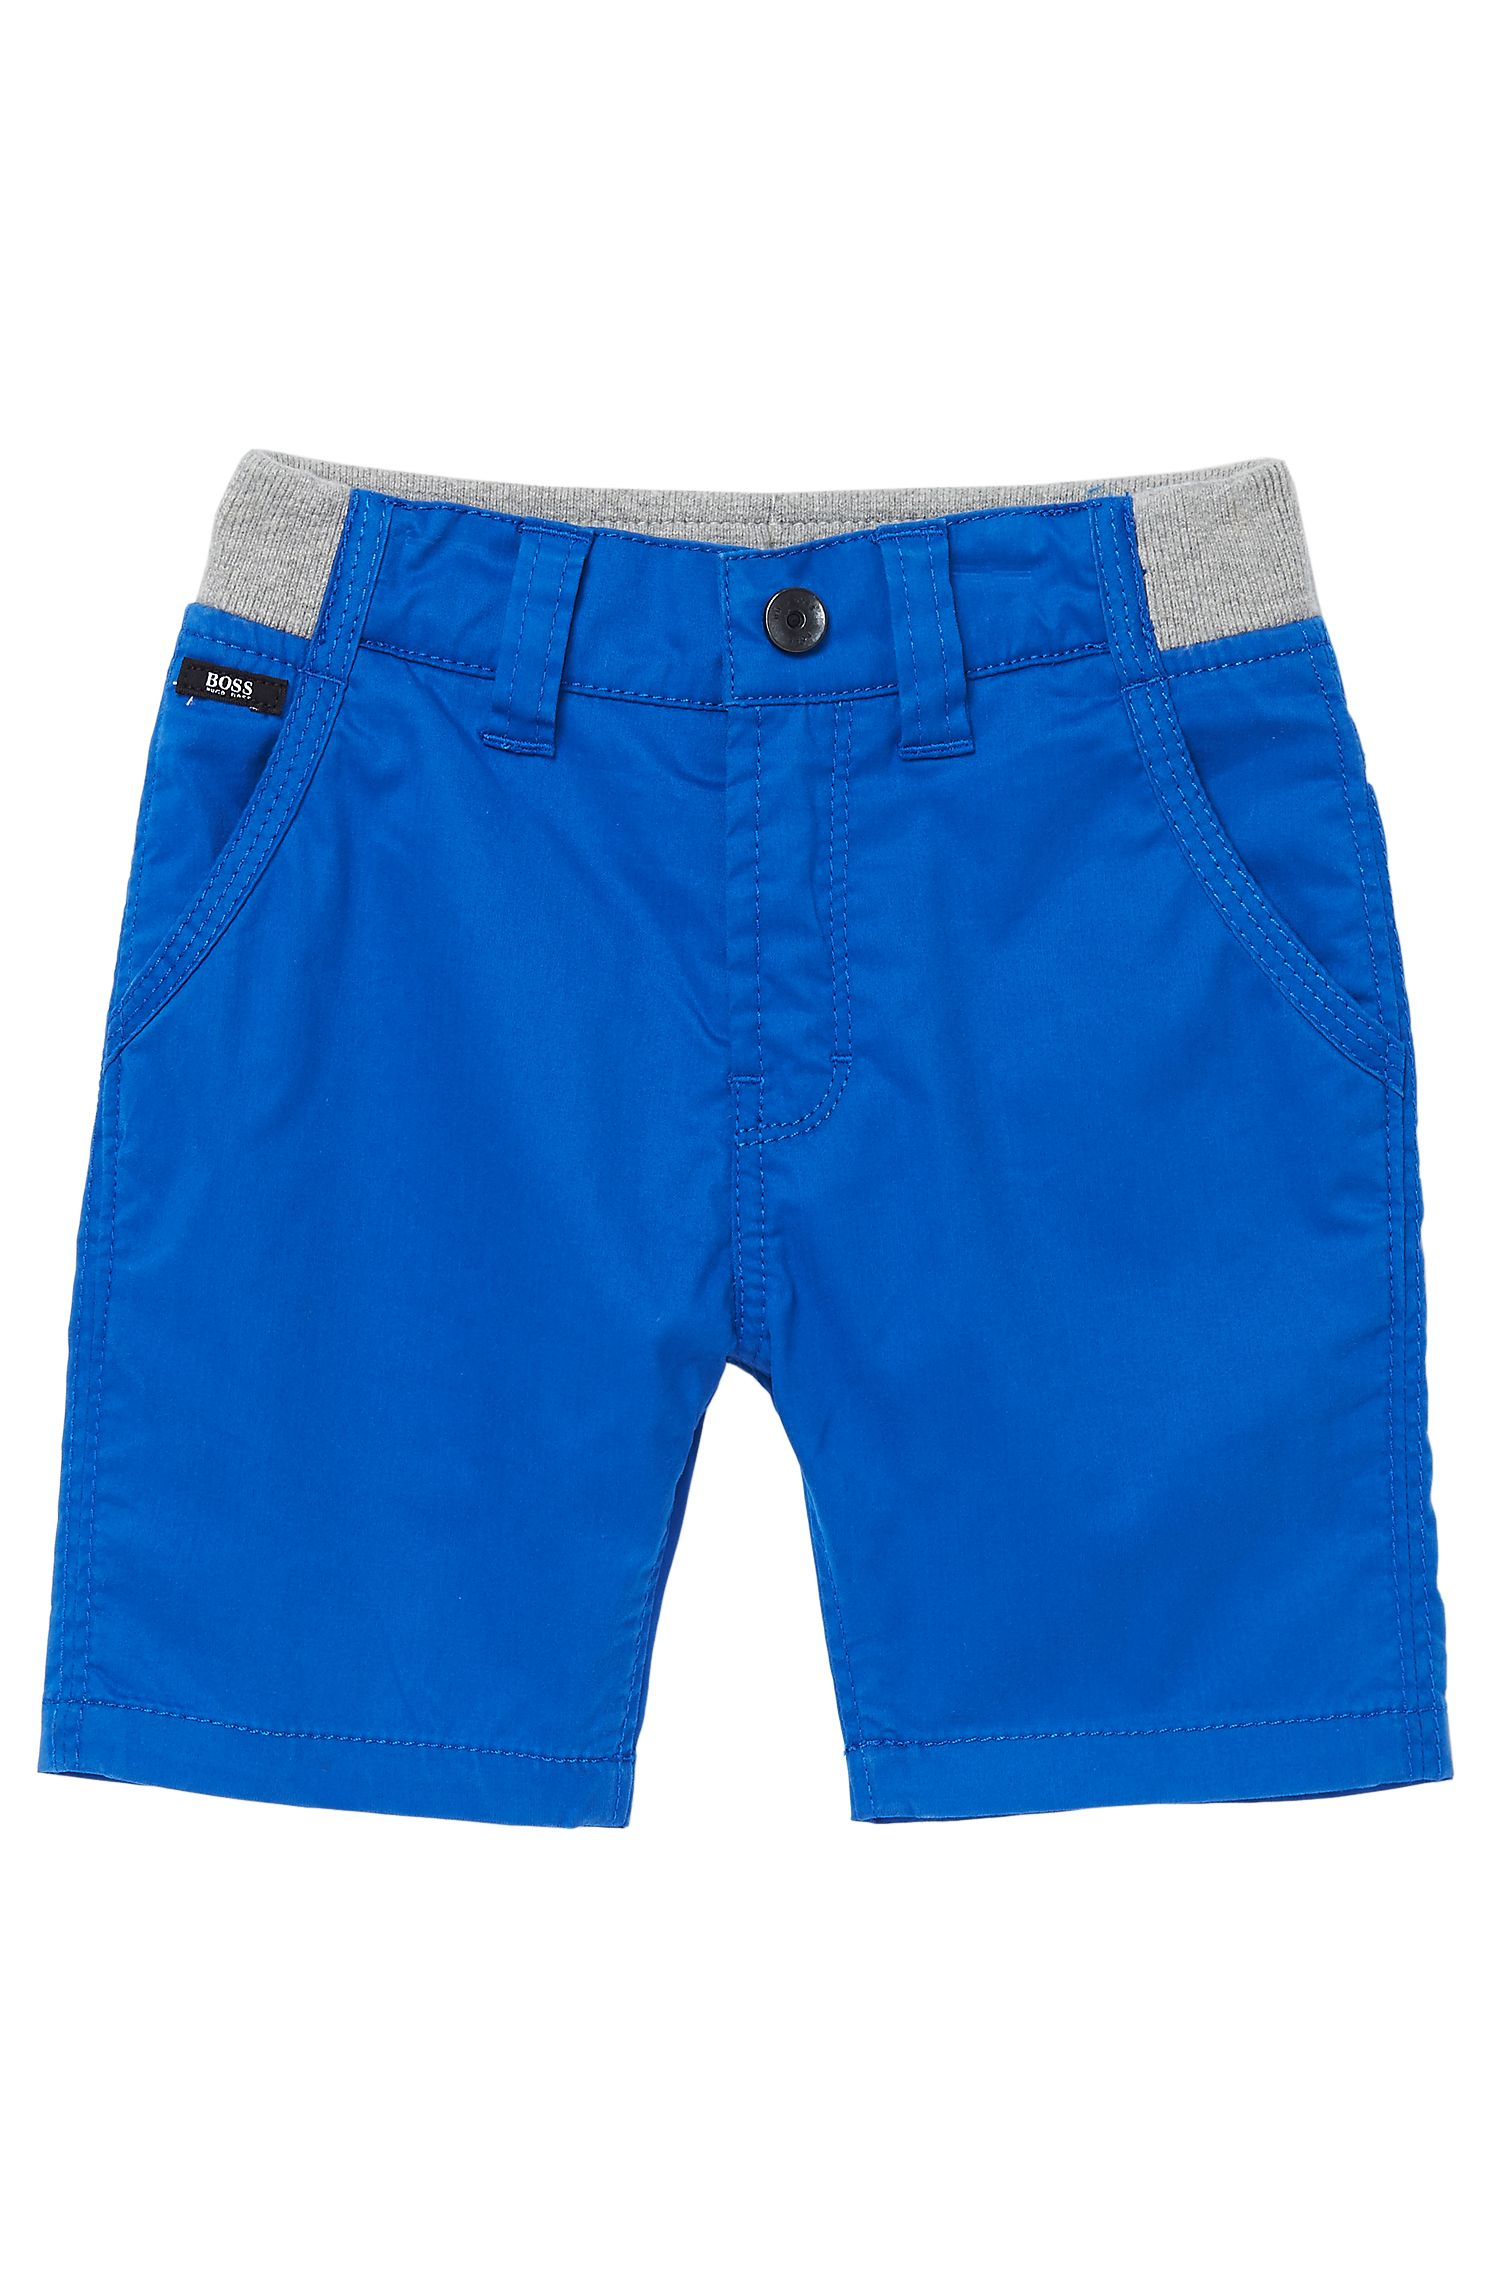 'J04146' | Toddler Cotton Twill Bermuda Shorts